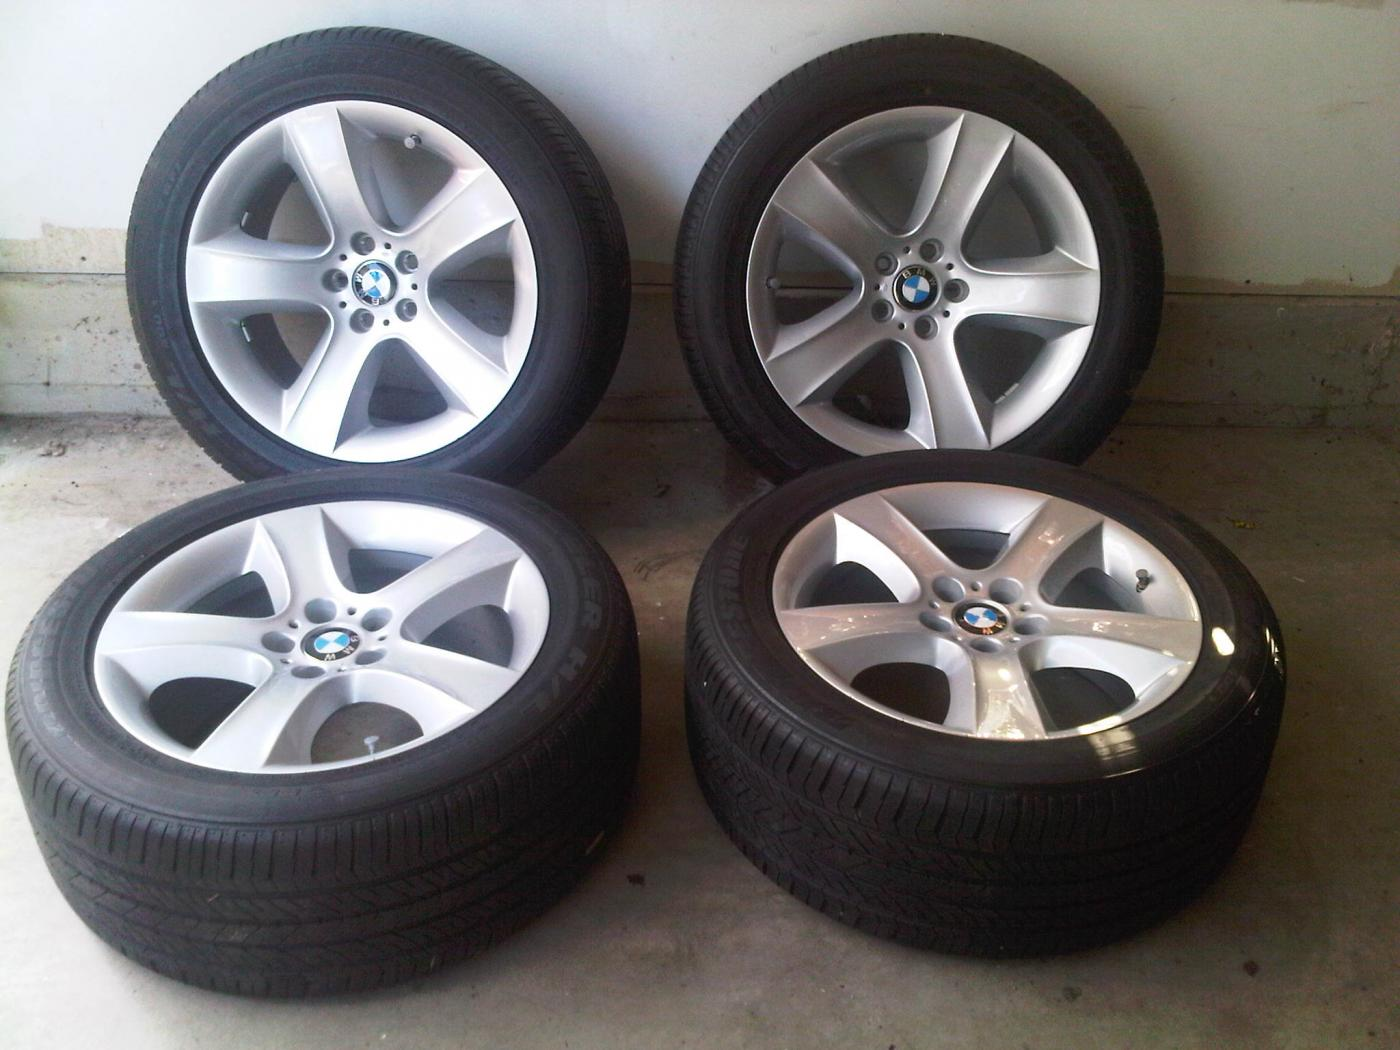 Like New Authentic Oem Bmw X5 E70 19 Quot Alloy Wheels Style 212 With Bridgestone Rfts